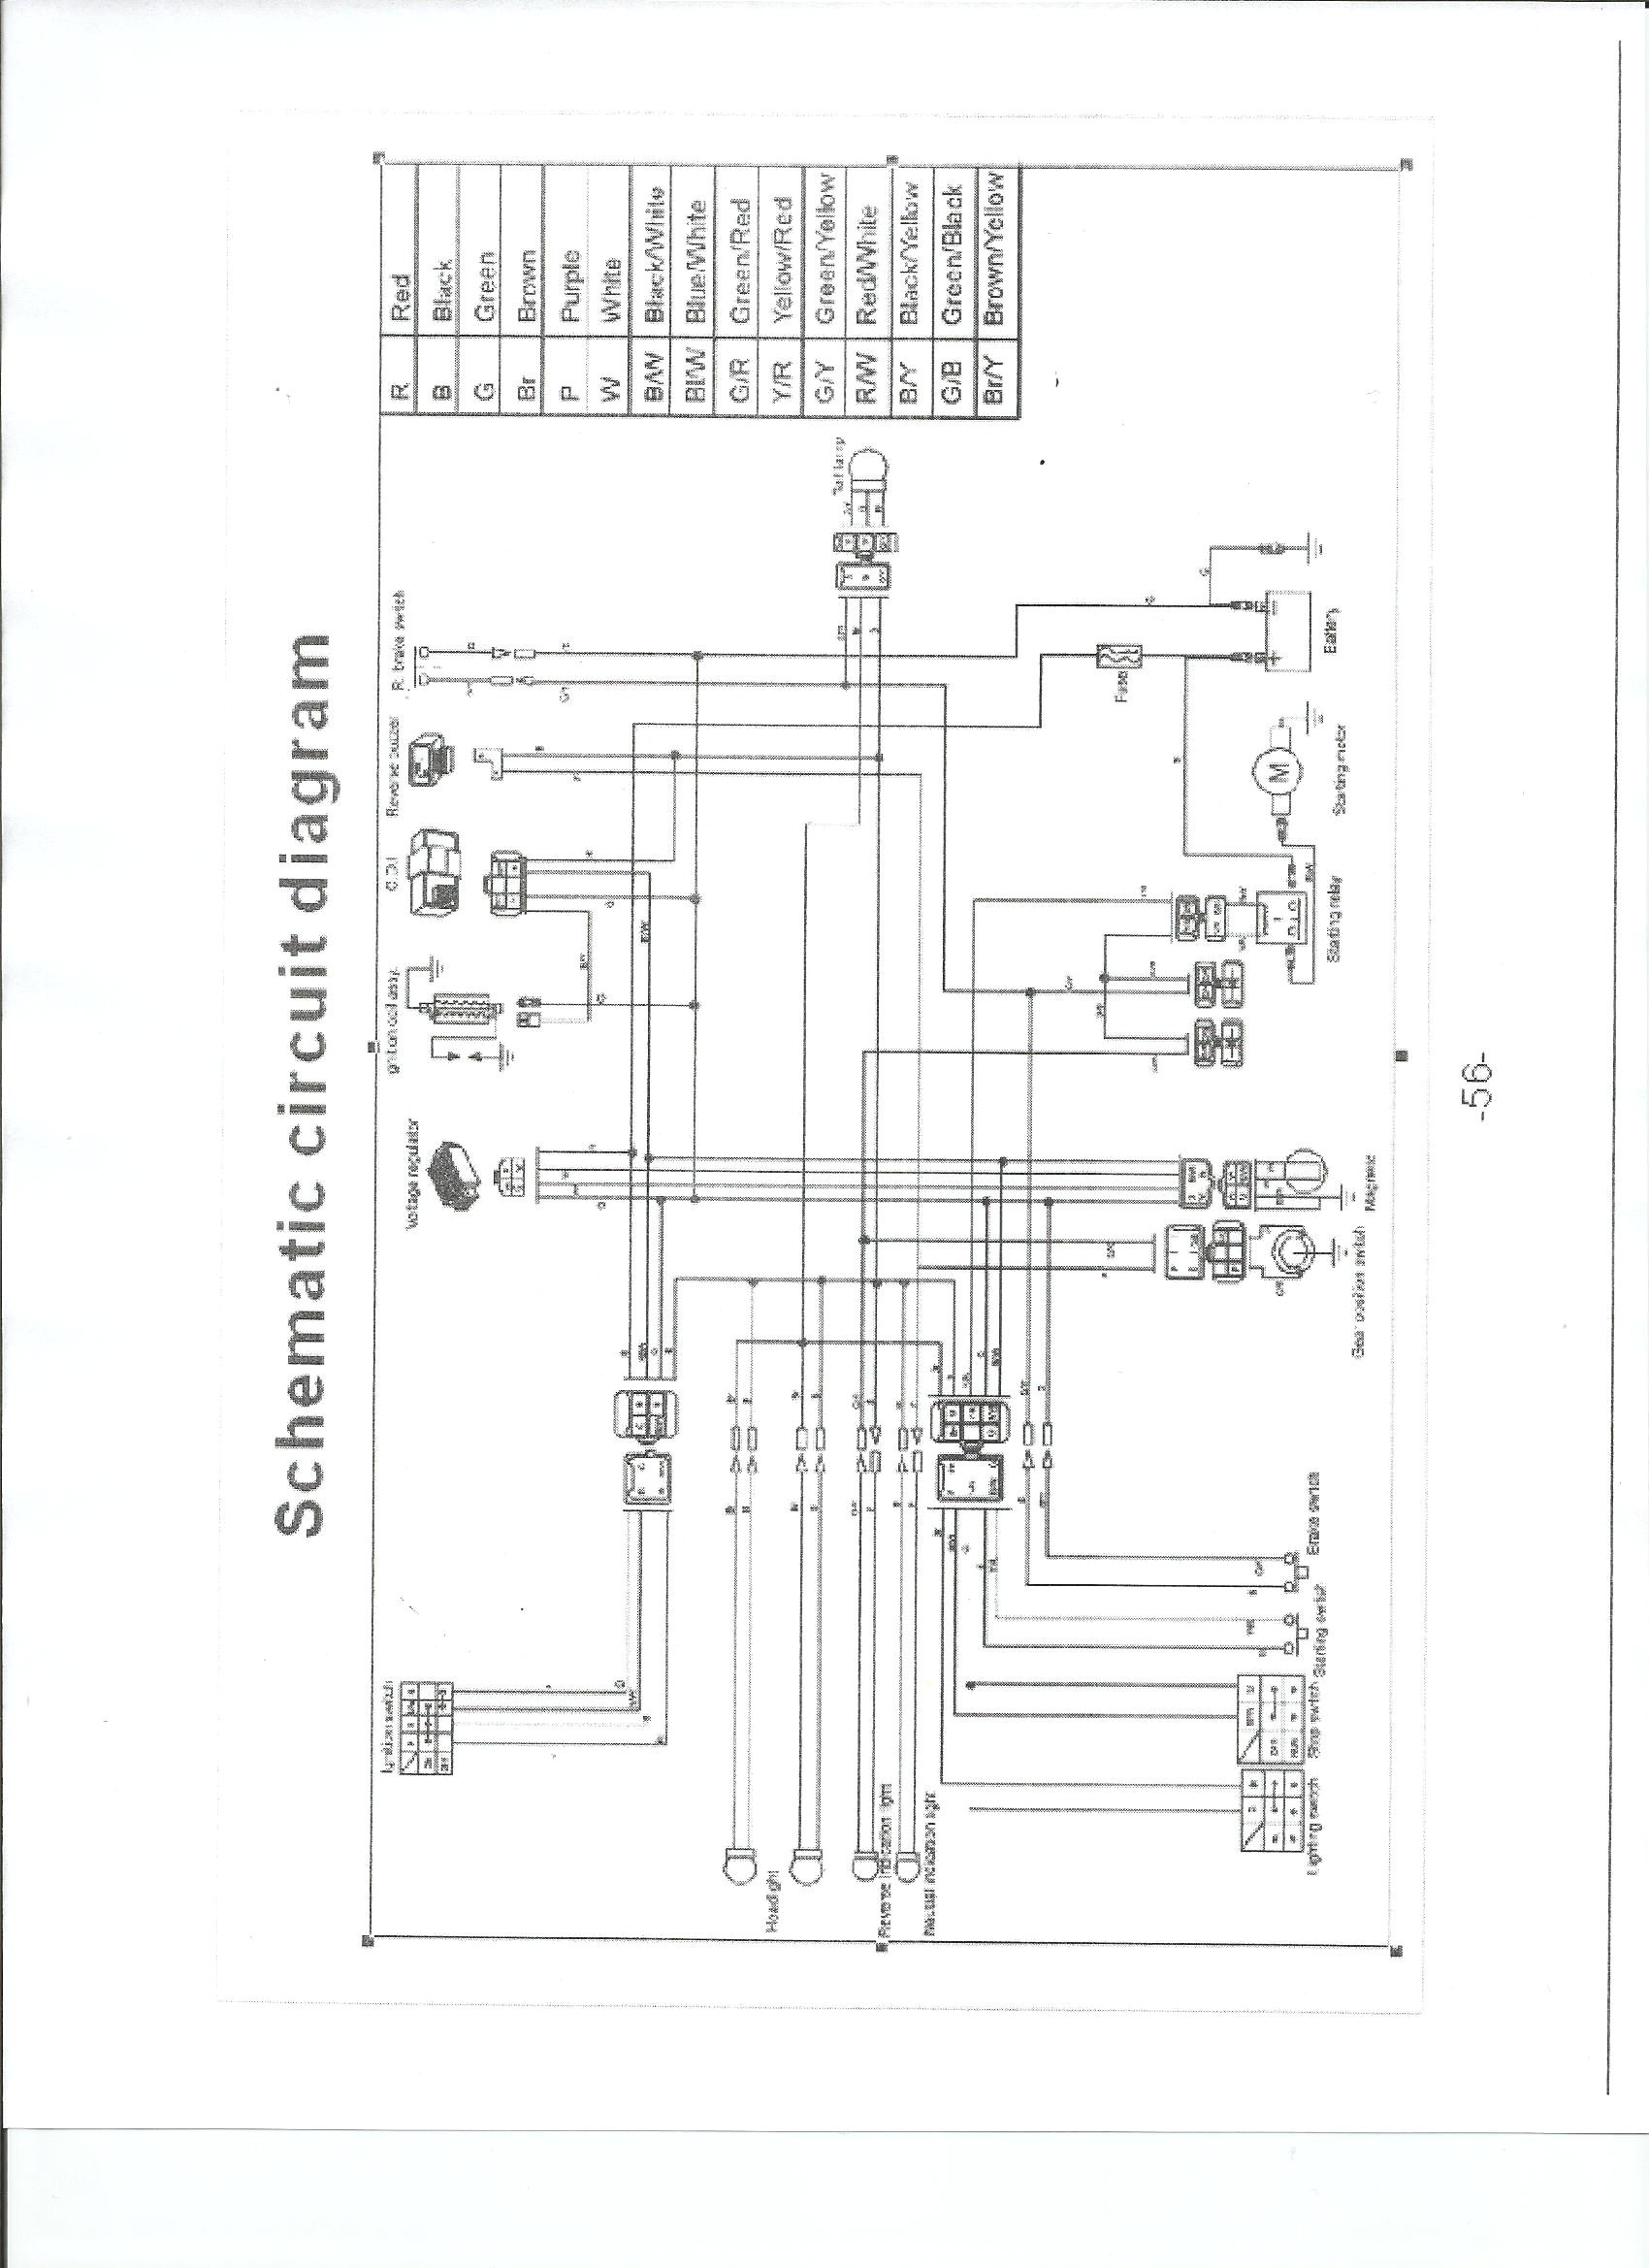 Ice Bear Wiring Diagram Libraries Sevcon 633t45320 Controller Schematic Atv Librarytao Tao 50cc Moped Example Electrical